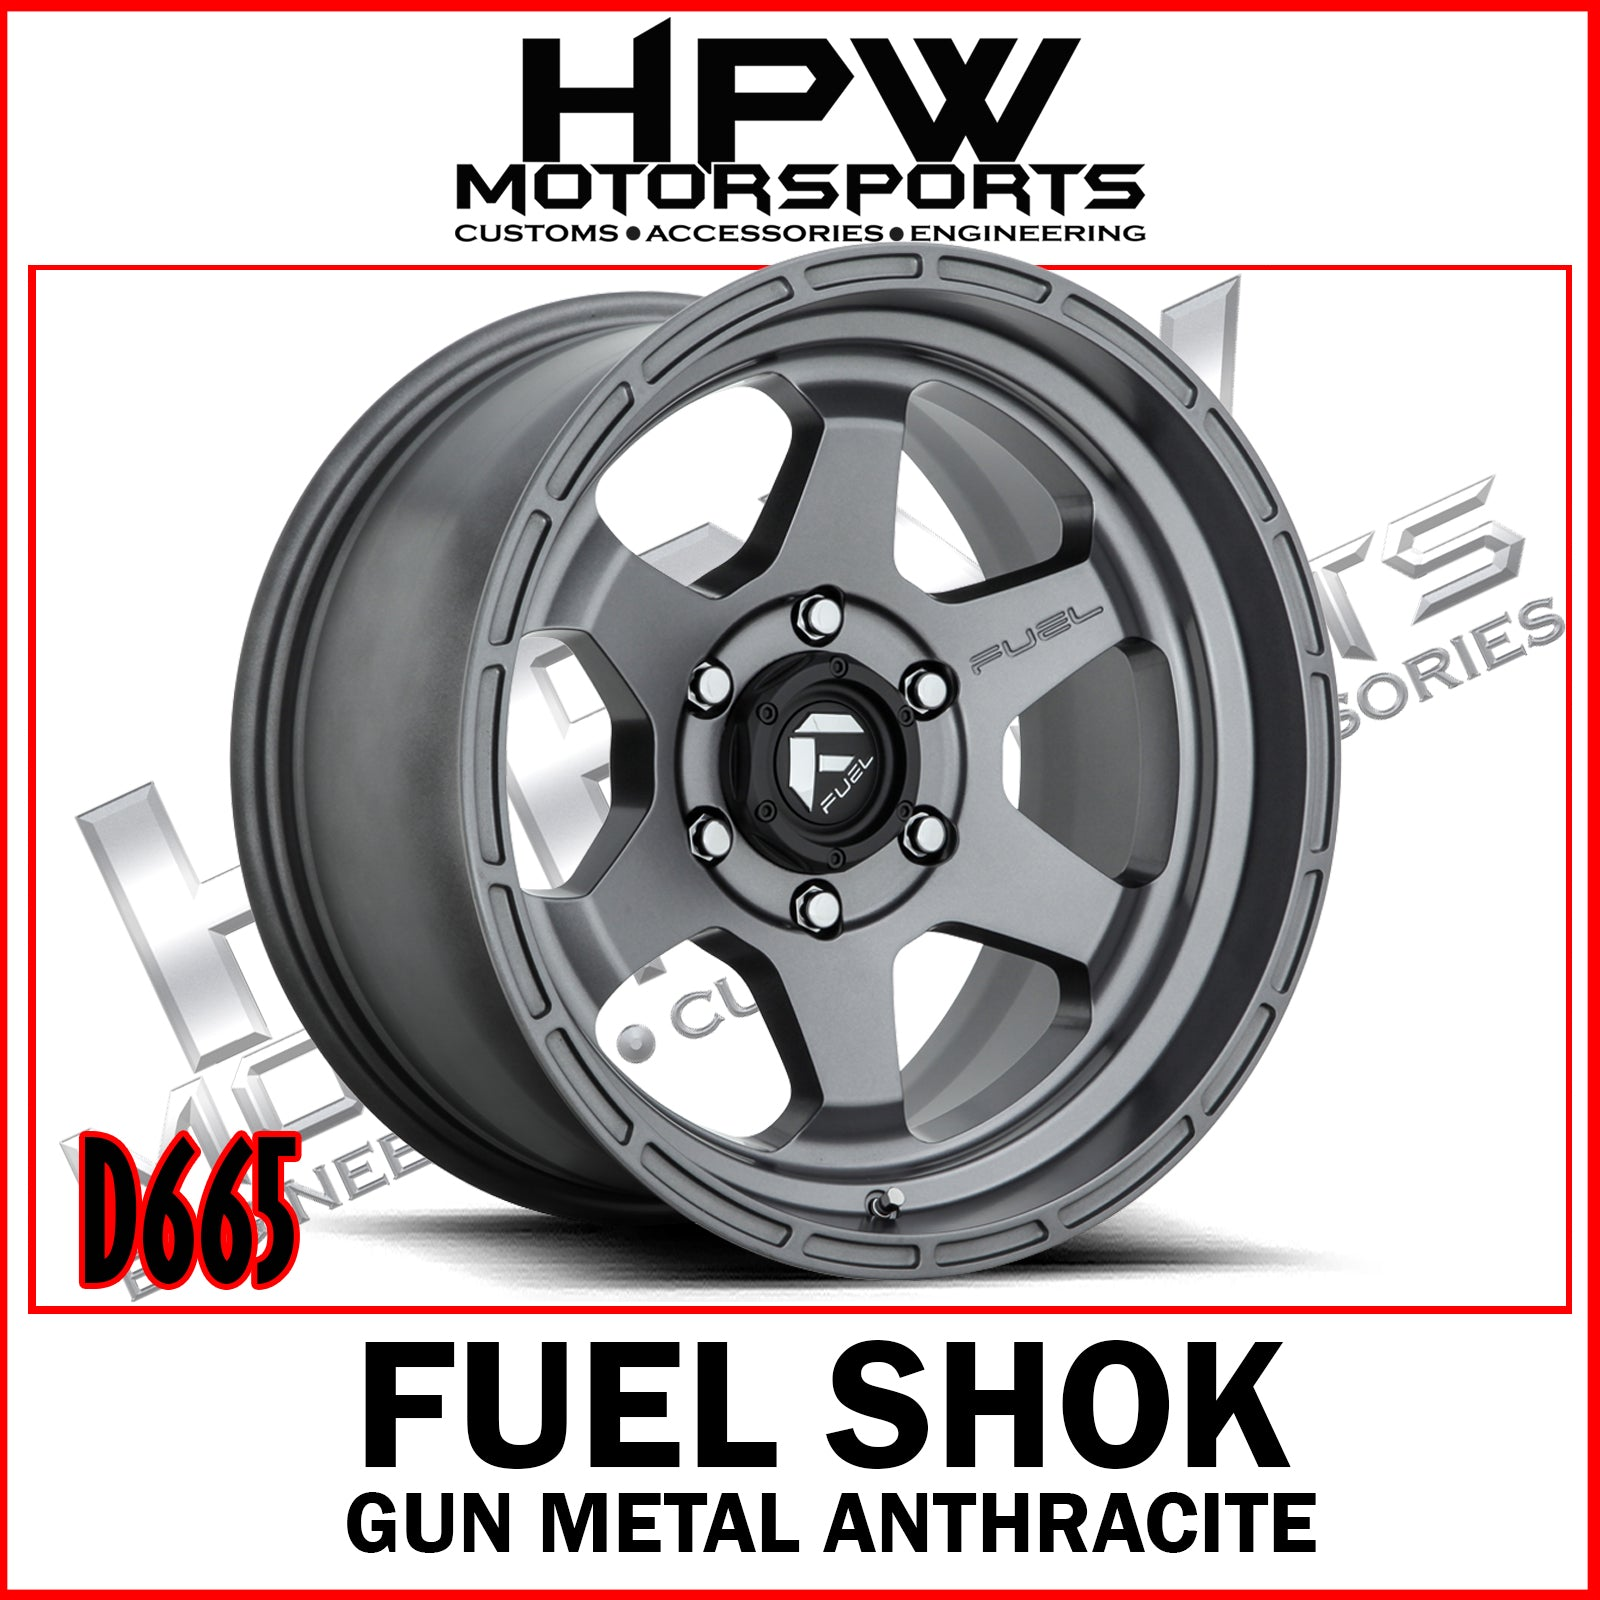 D665 FUEL SHOK - GUN METAL ANTHRACITE - Set of 4